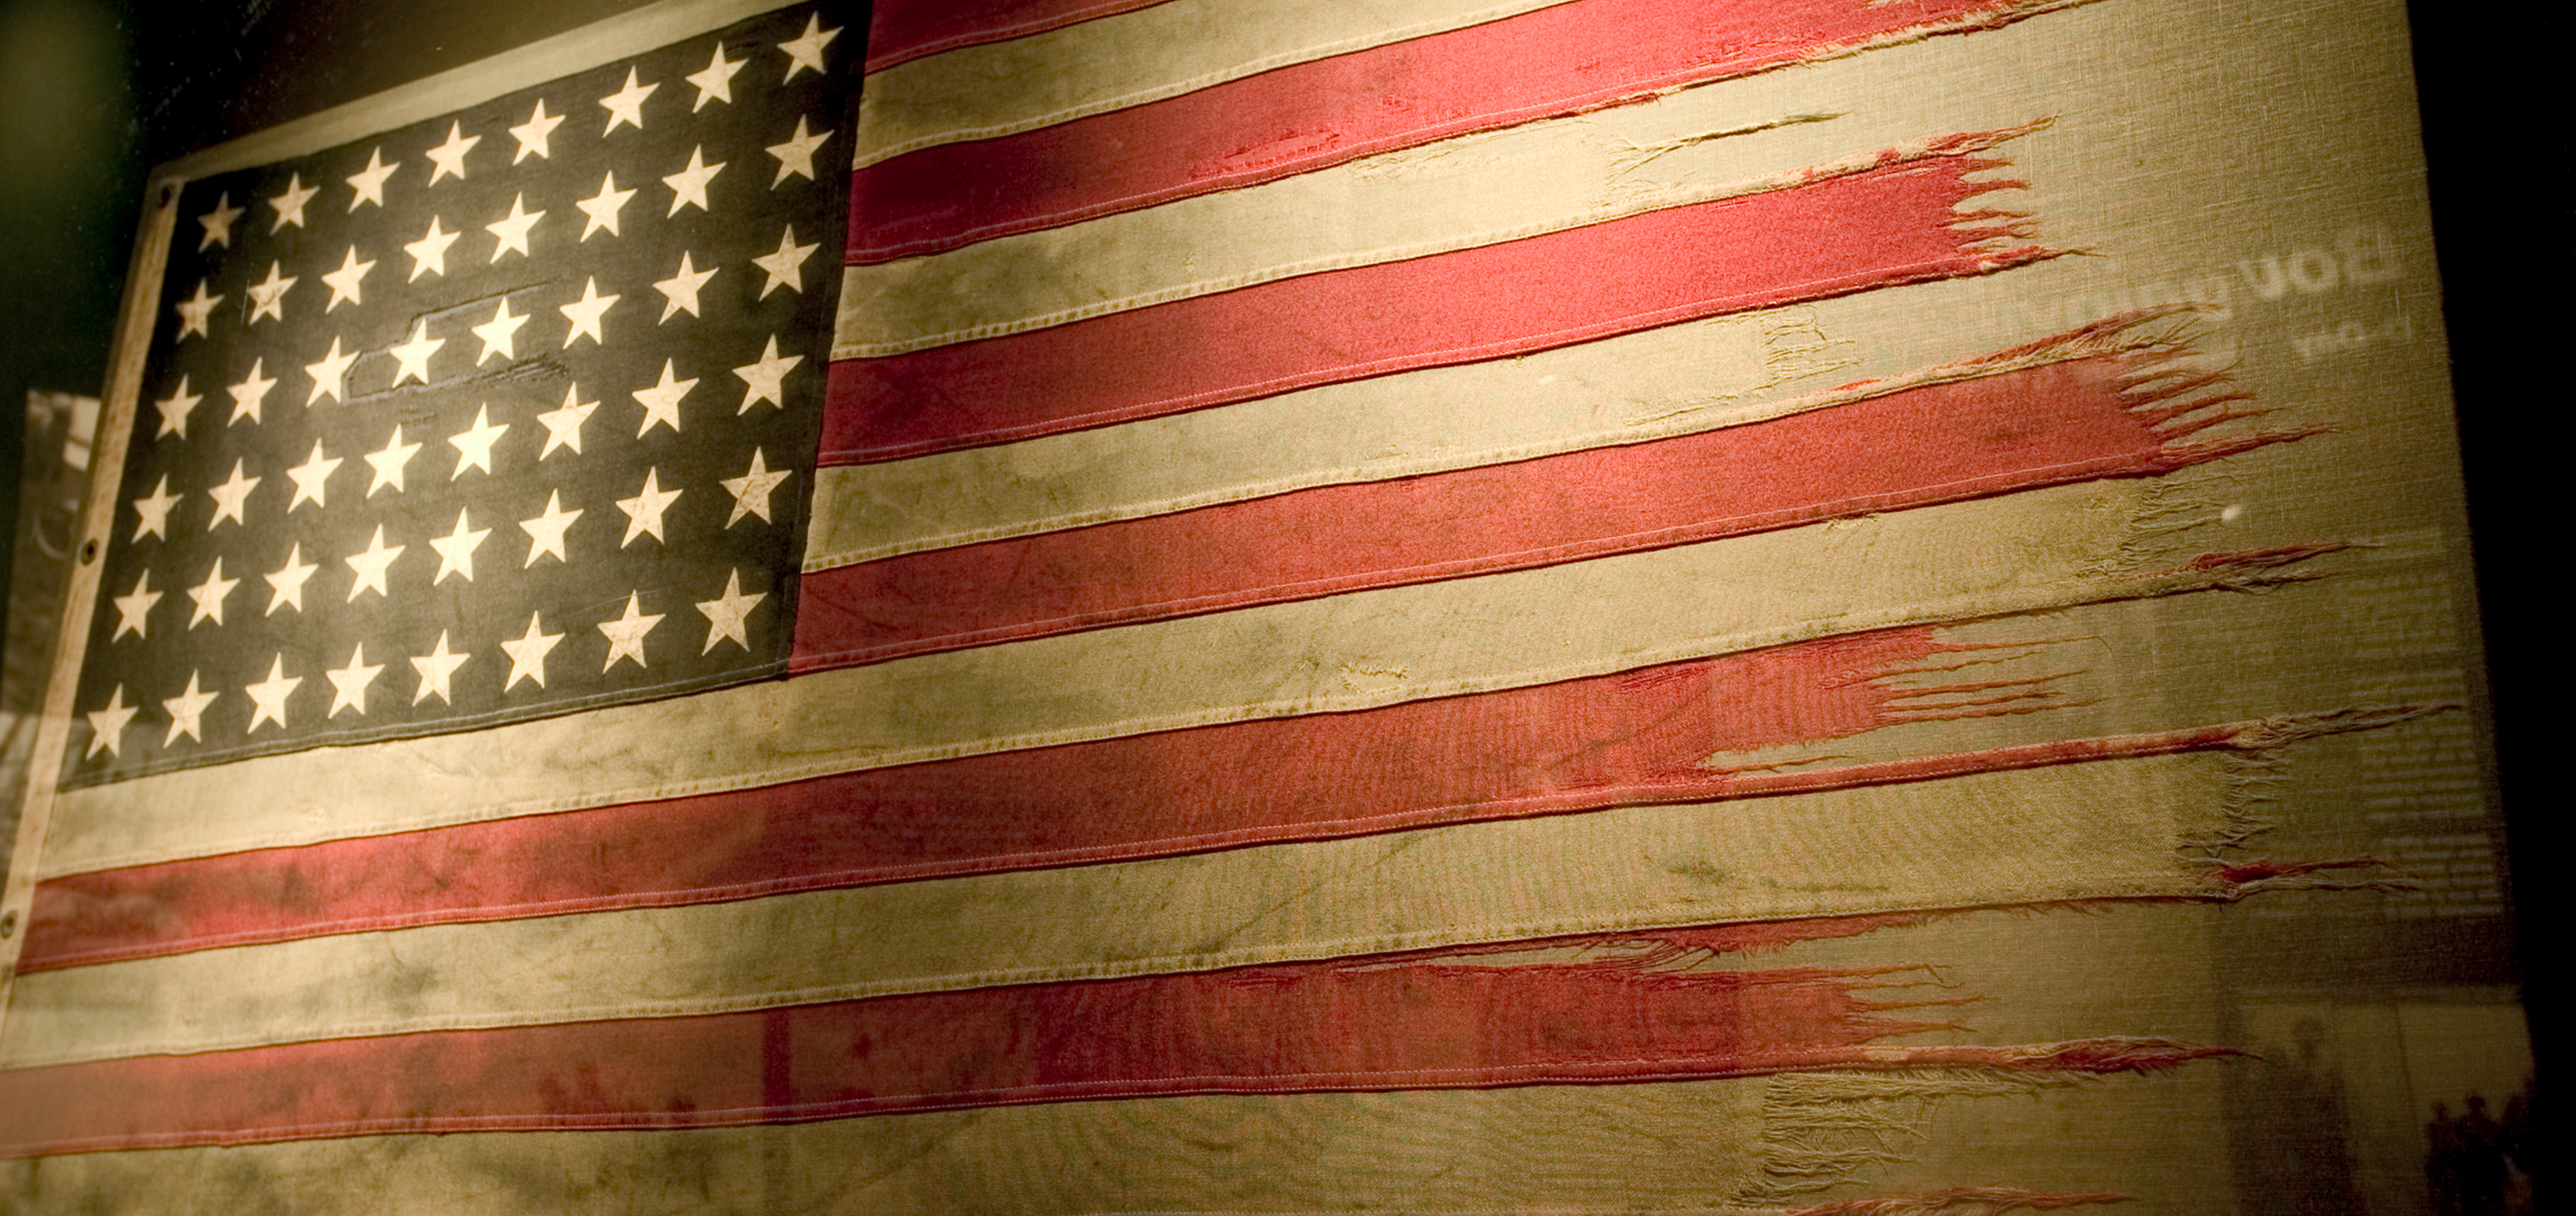 D-Day Invasion of Normandy gallery, American flag